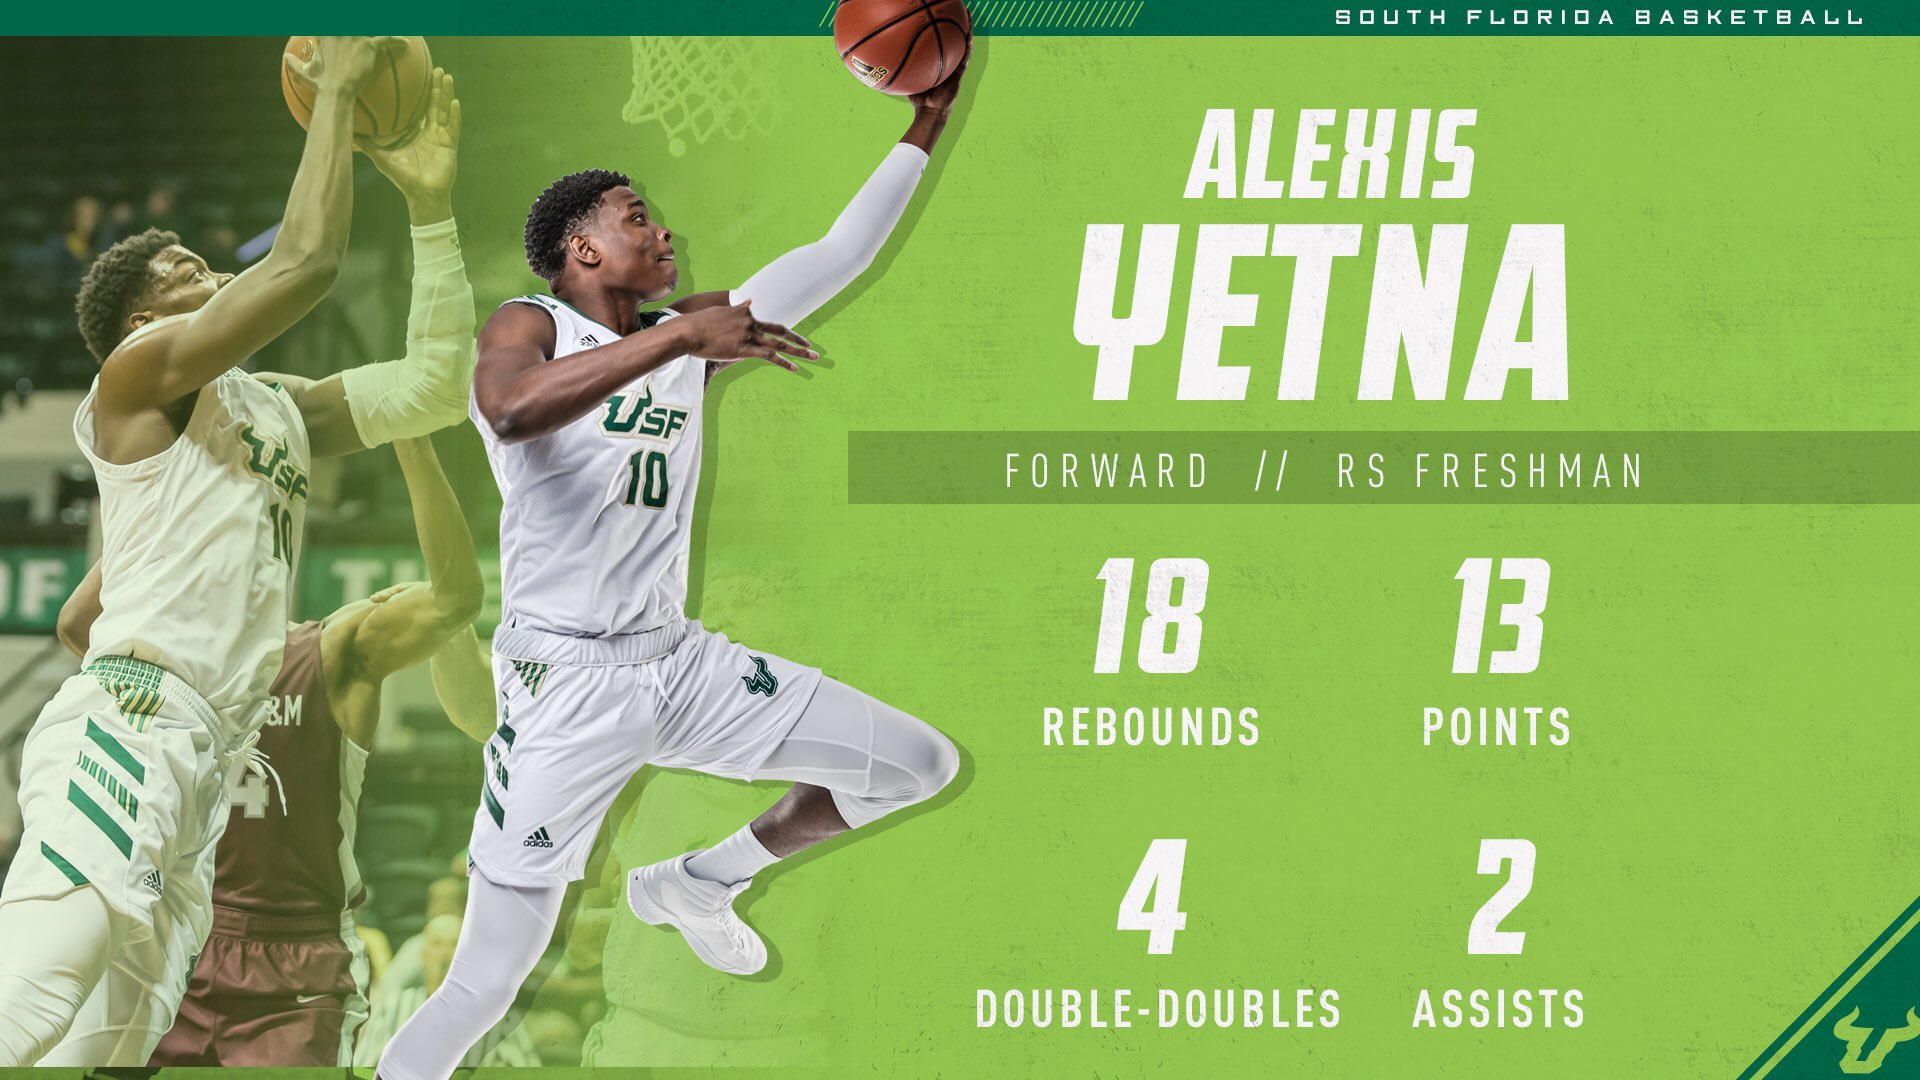 USF forward Alexis Yetna out for 2019-2020 season